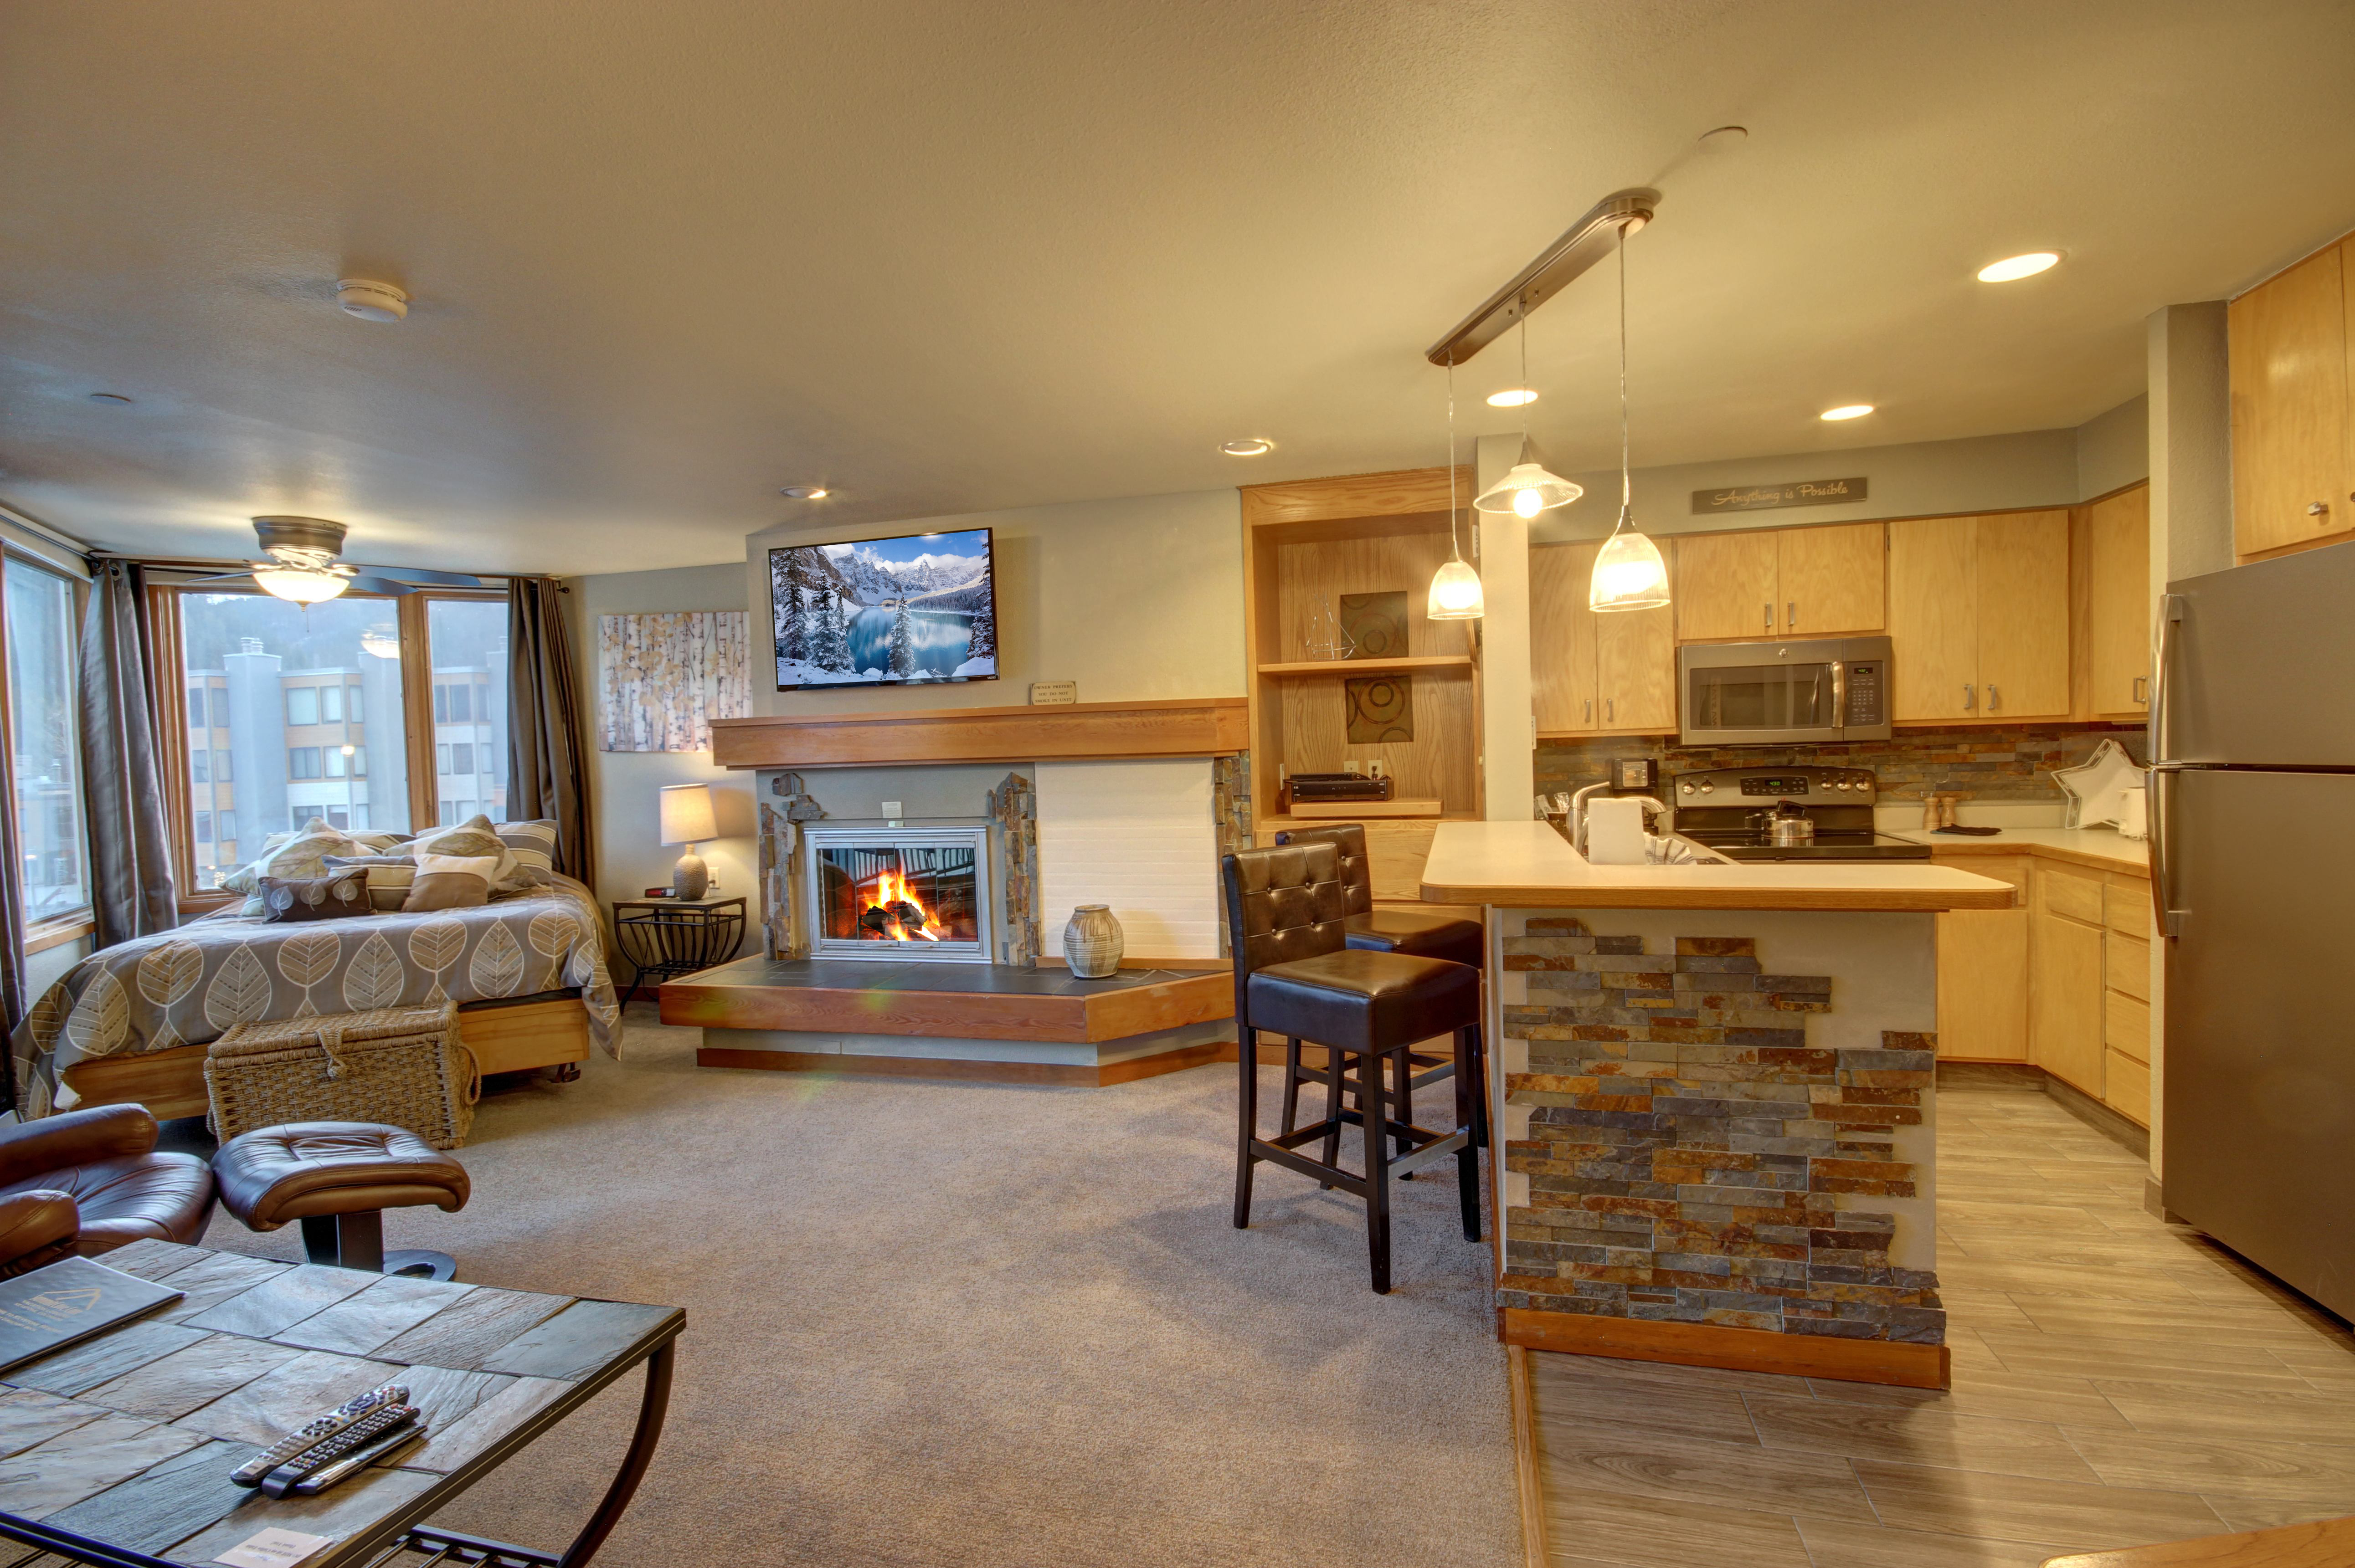 Living room and kitchen with a modern touch, kitchen also includes breakfast bar